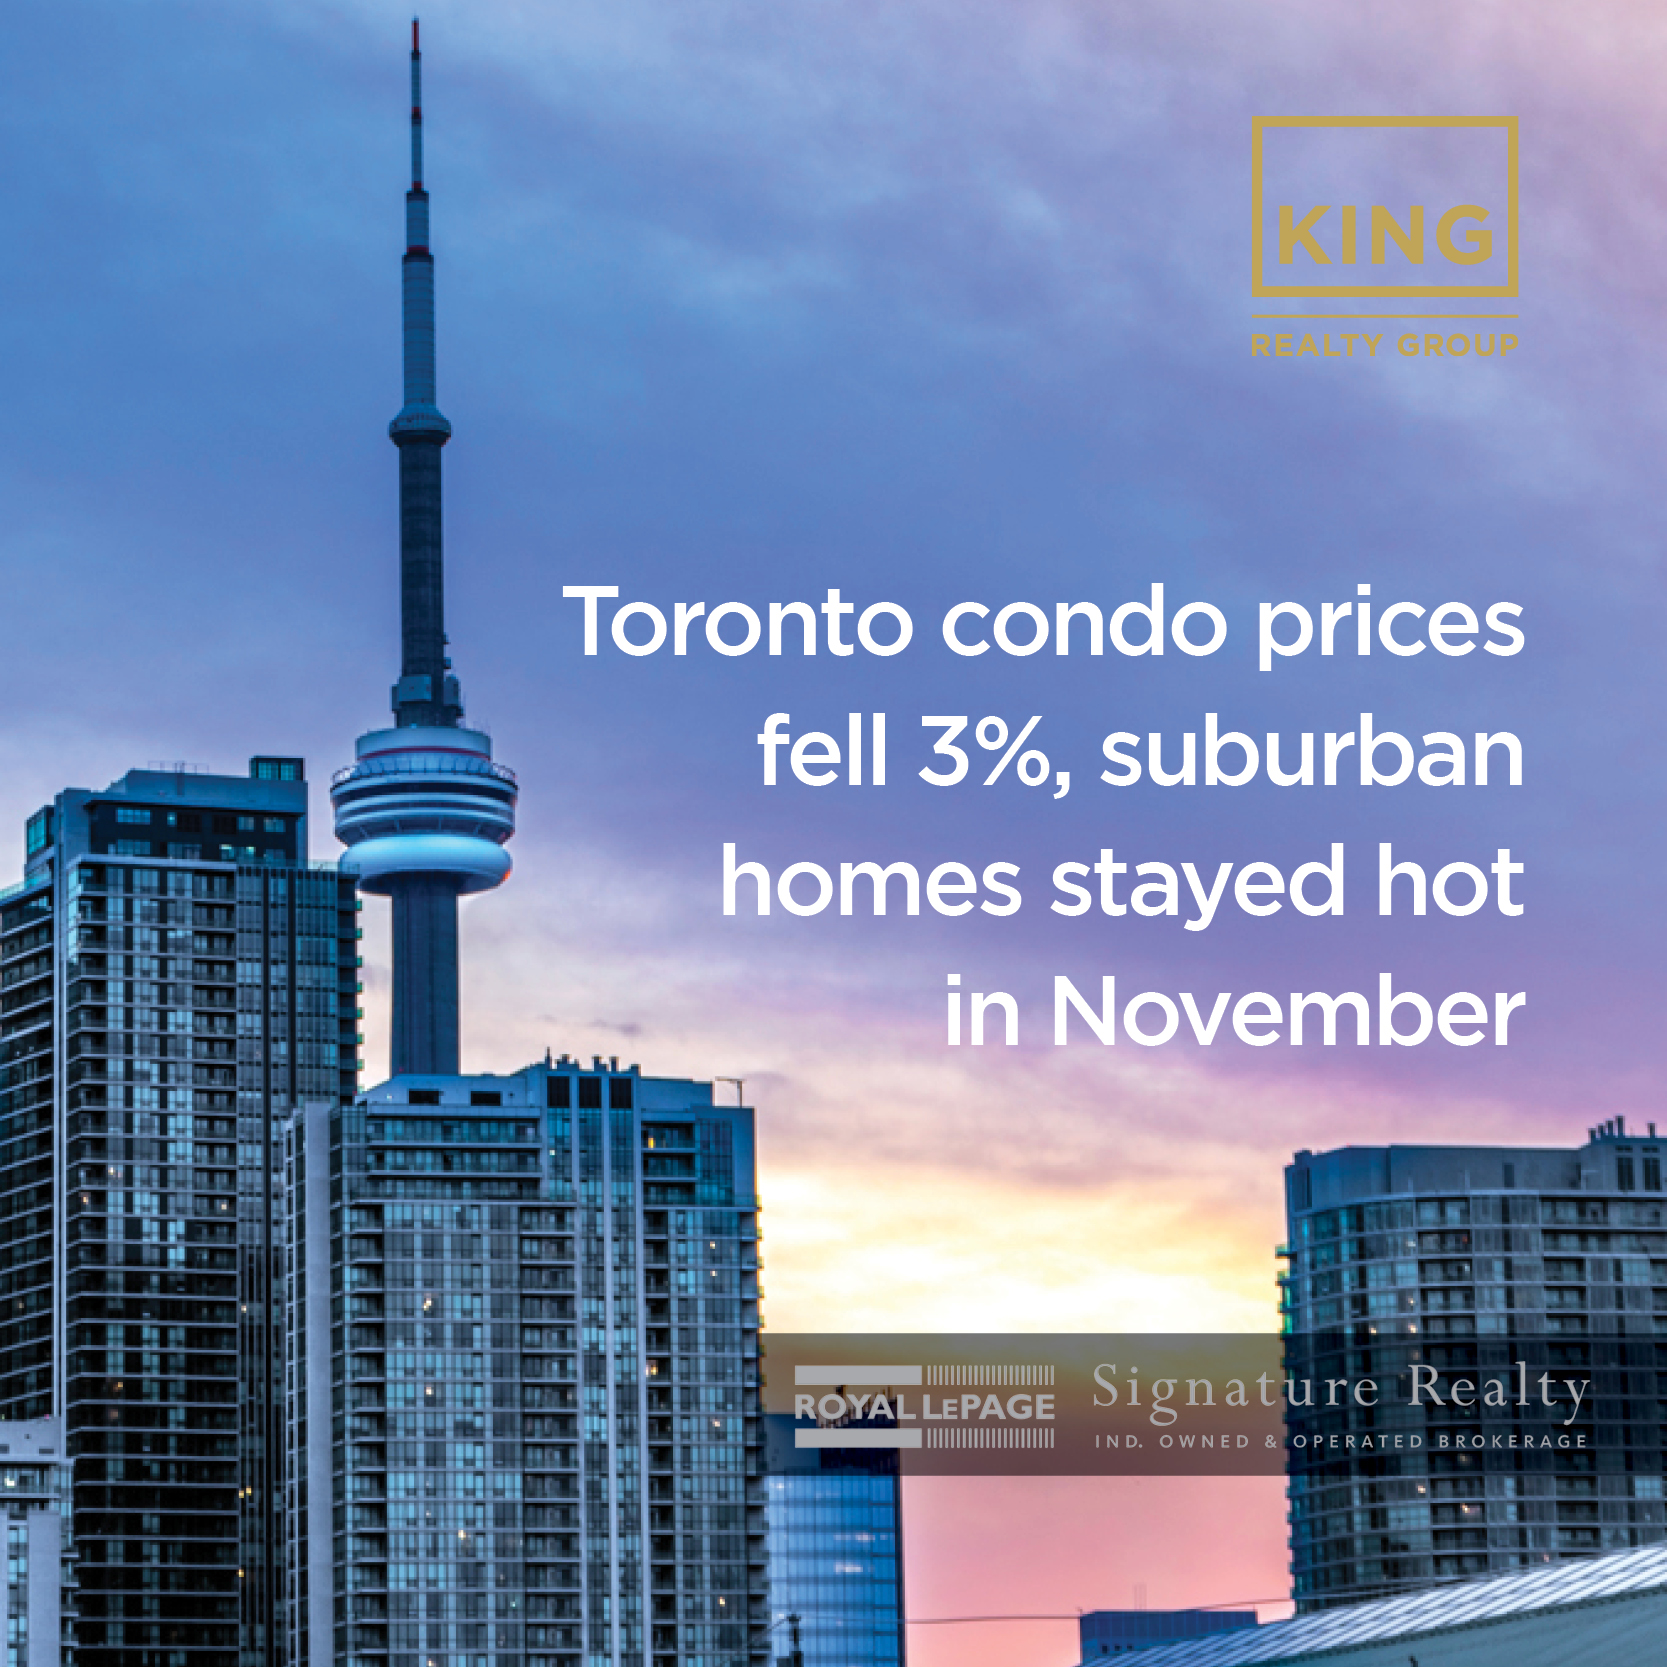 Toronto condo prices fell 3%, suburban homes stayed hot in November